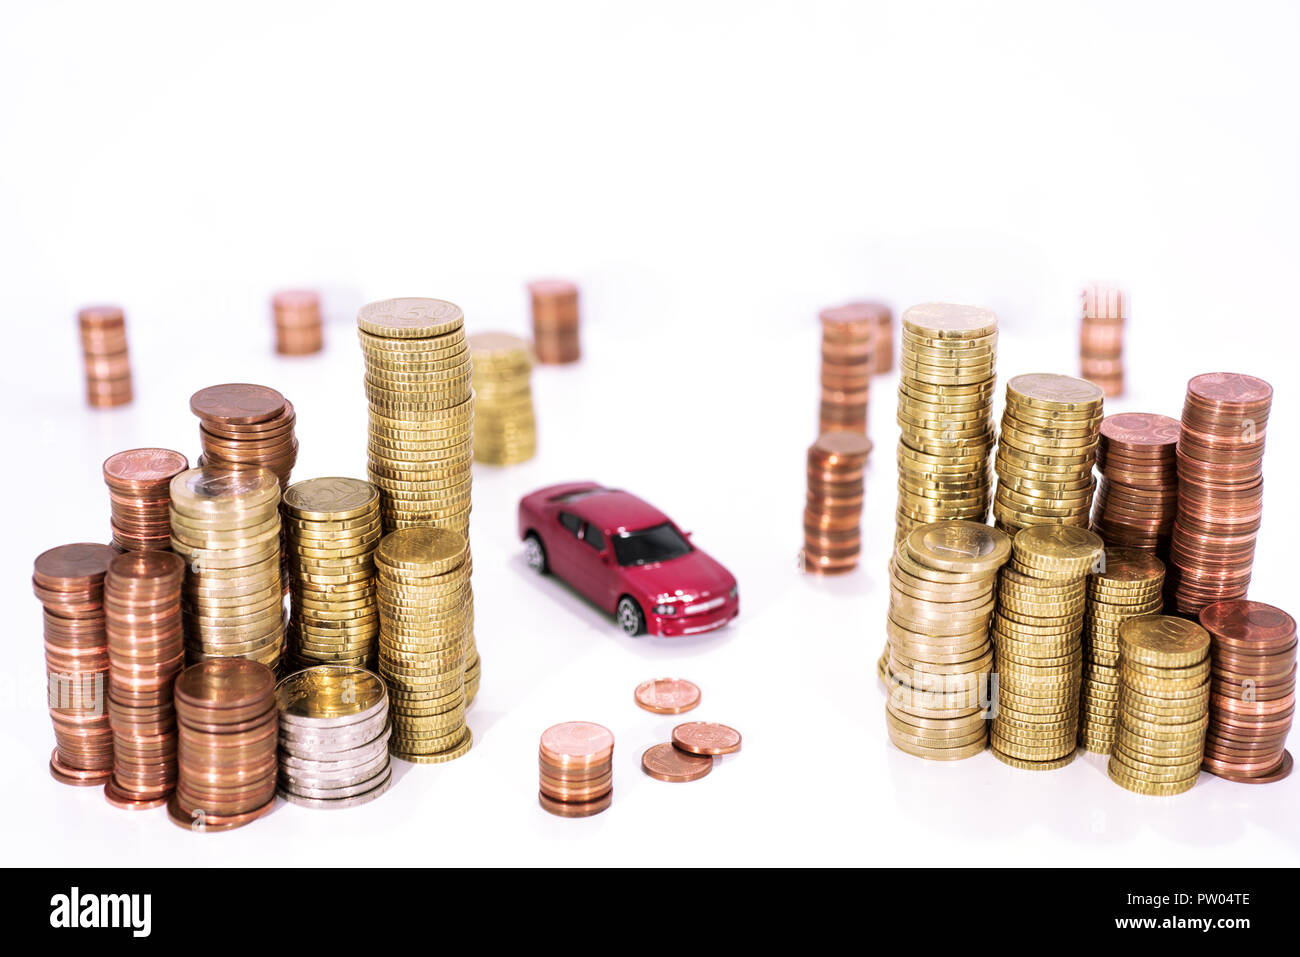 Abstract photo of car price rising. Car model isolated on white background with a lot of euro coins. - Stock Image